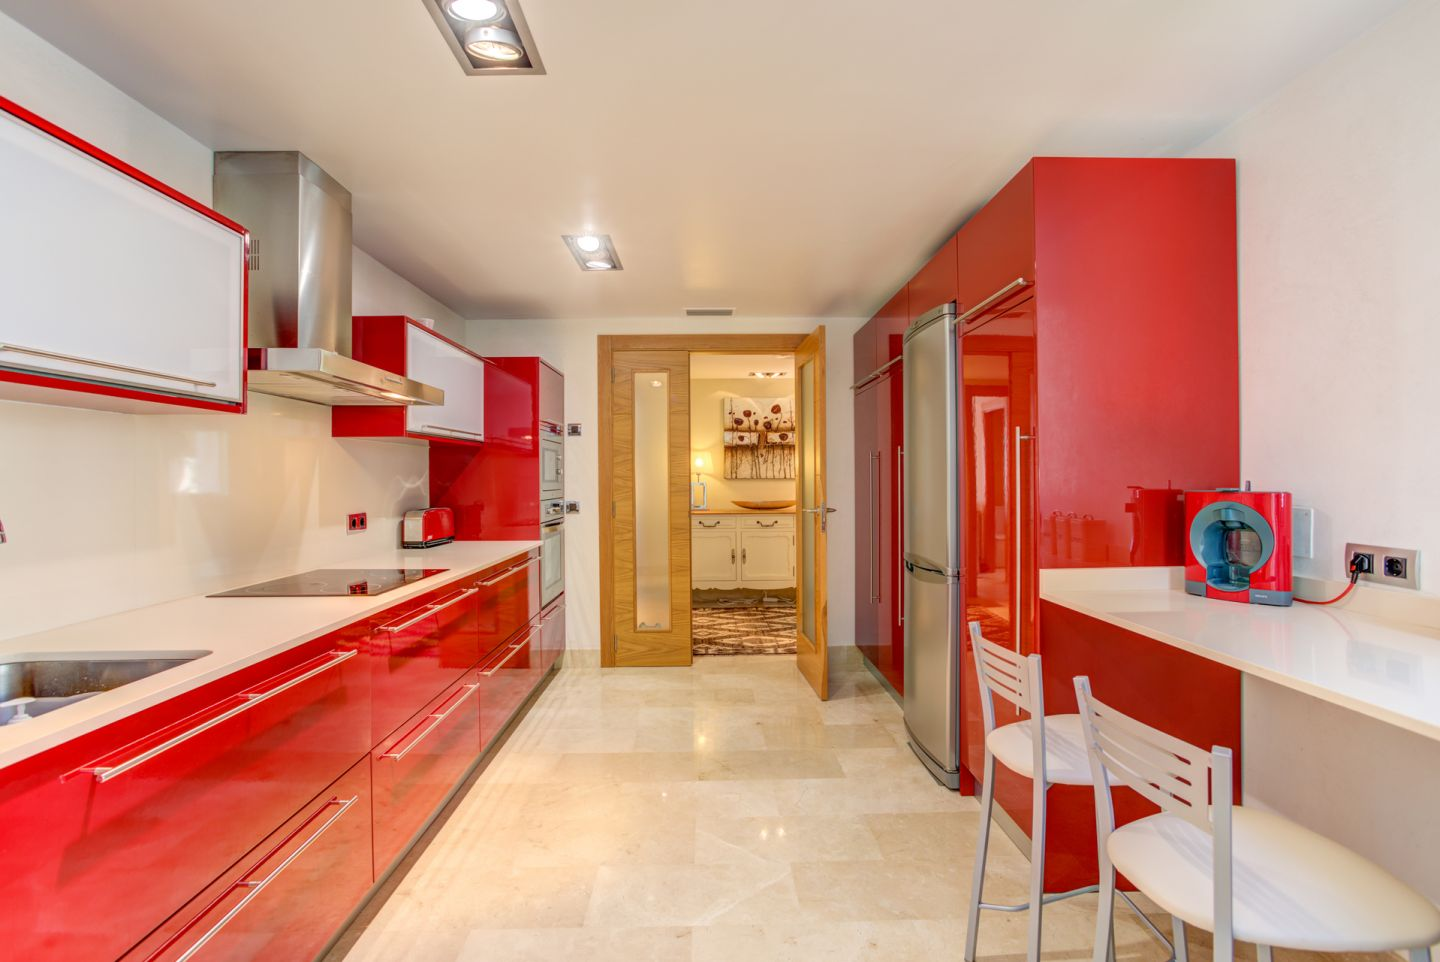 3 Bed Apartment for sale in Puerto Pollensa 3